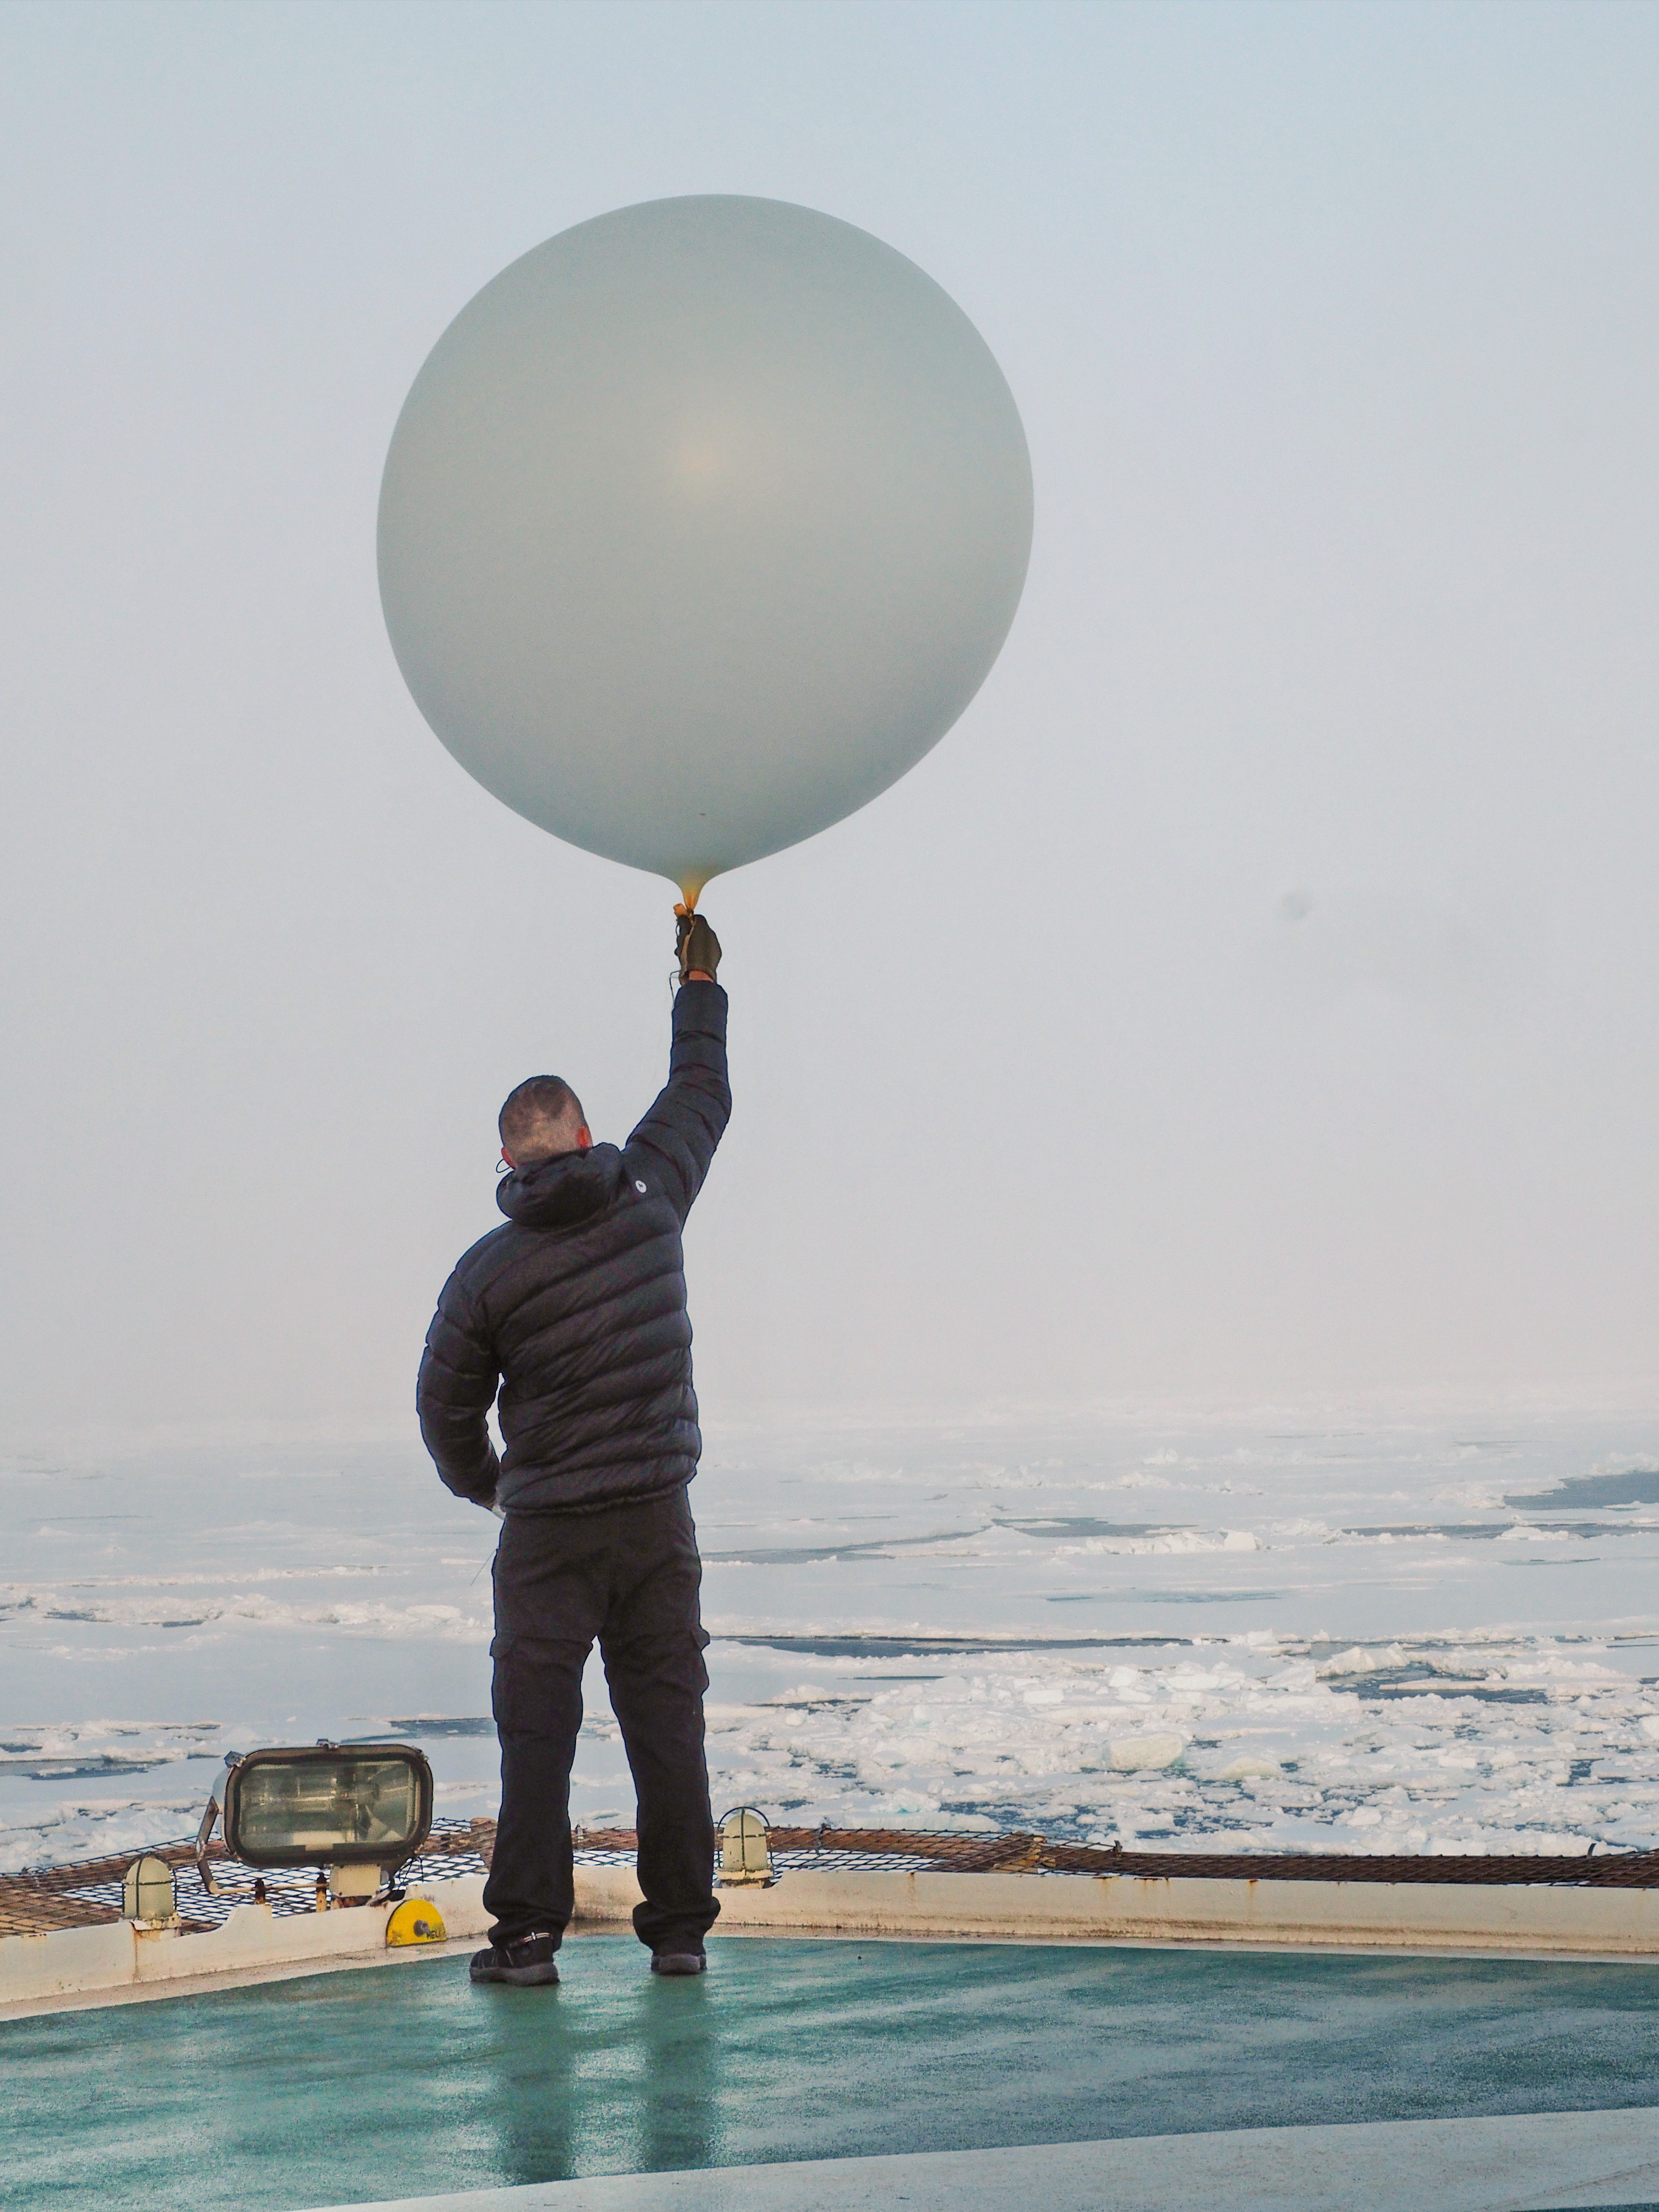 Expedition meteorologist Nicke Juuso helping out with the sounding balloons, released every 6 hours from the helipad. Photo: Michael Tjernström